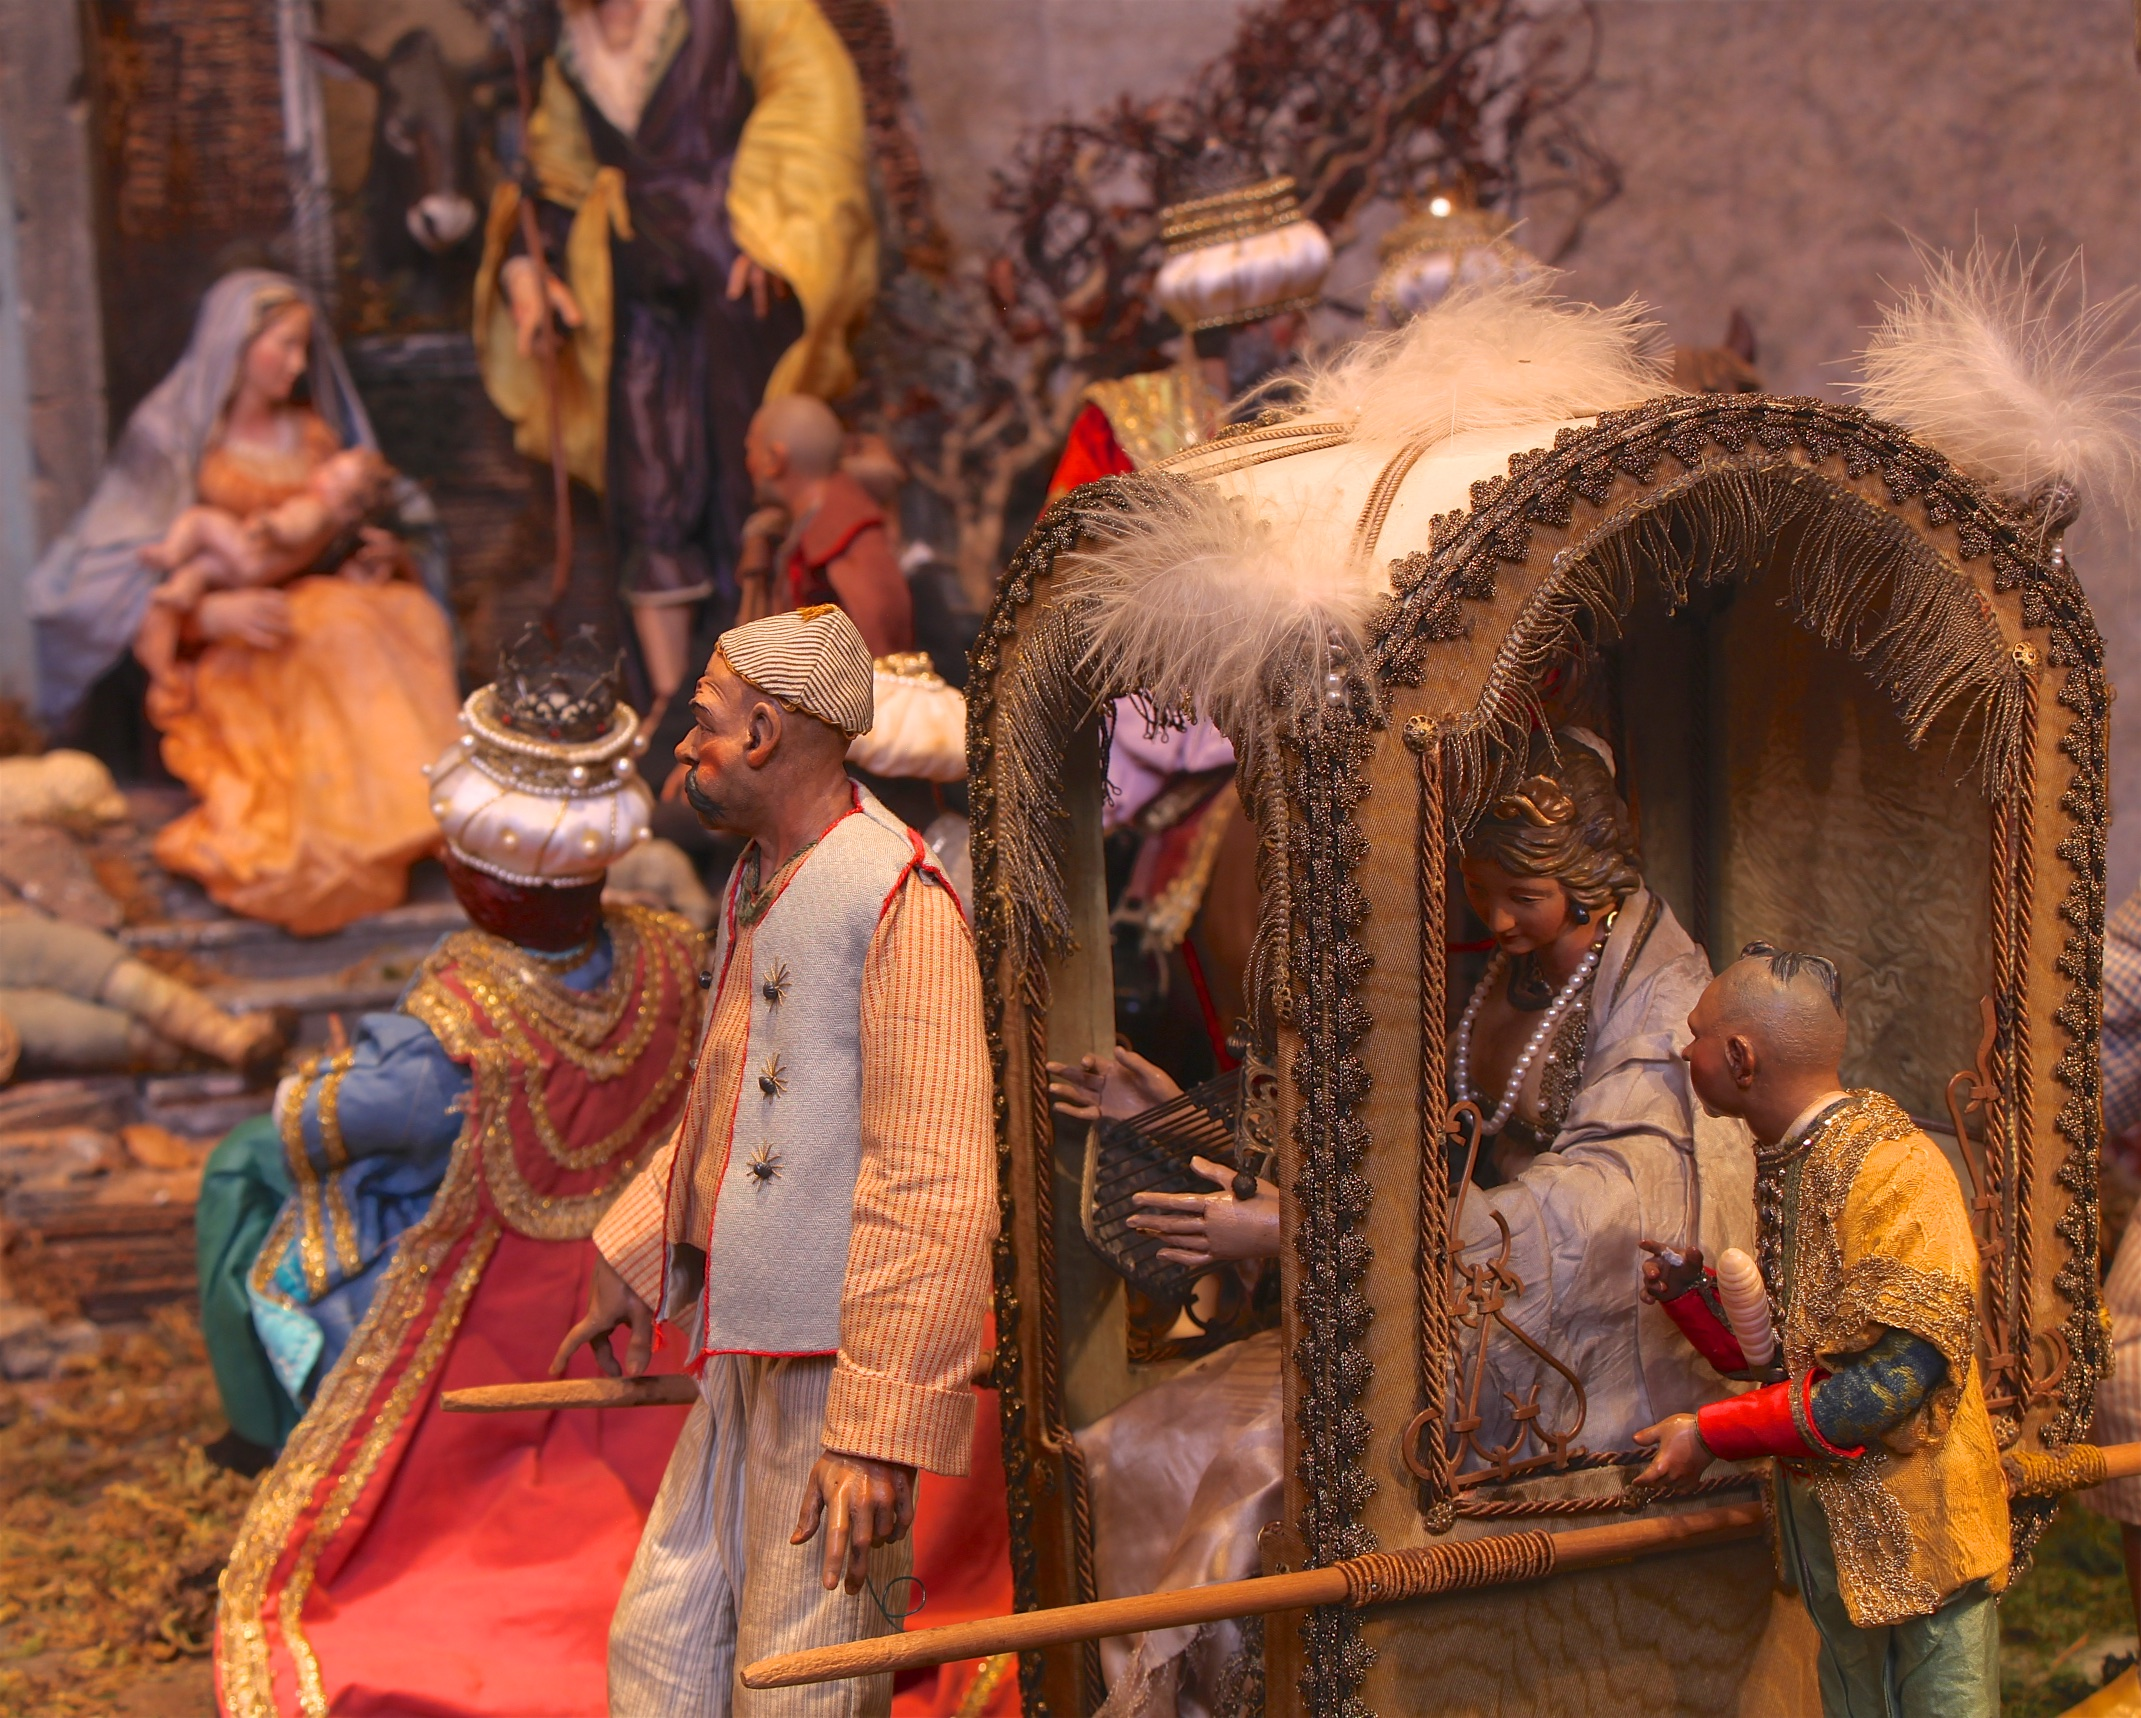 Figure 17: All segments of society, rich and poor, are present in a Neapolitan Presepio. An aristocratic lady arrives at the Nativity scene in a sedan chair, carried by attendants.